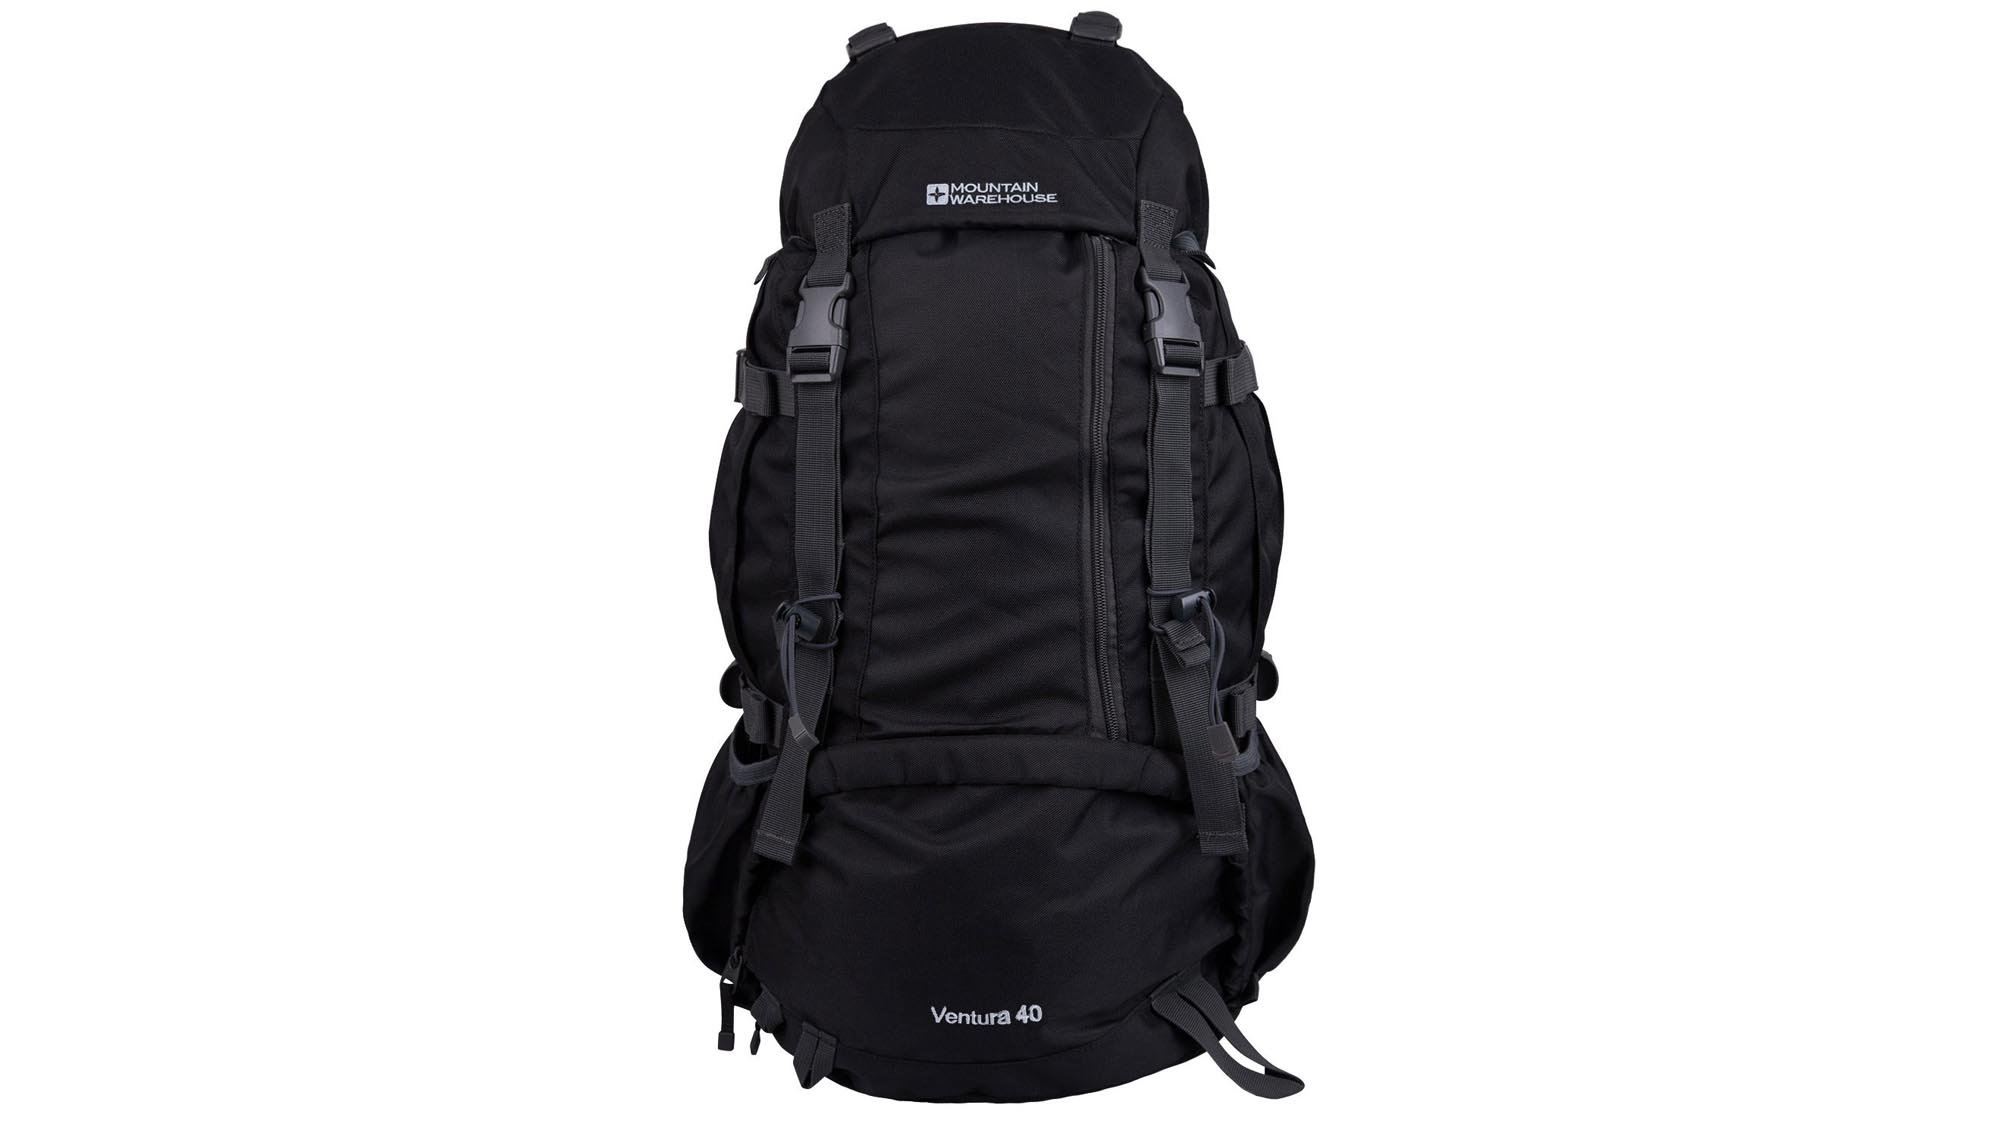 878373e10233 Mountain Warehouse s Ventura is simple and straightforward but still ticks  all our boxes  it holds 40 litres of gear – enough for a multi-day hike ...